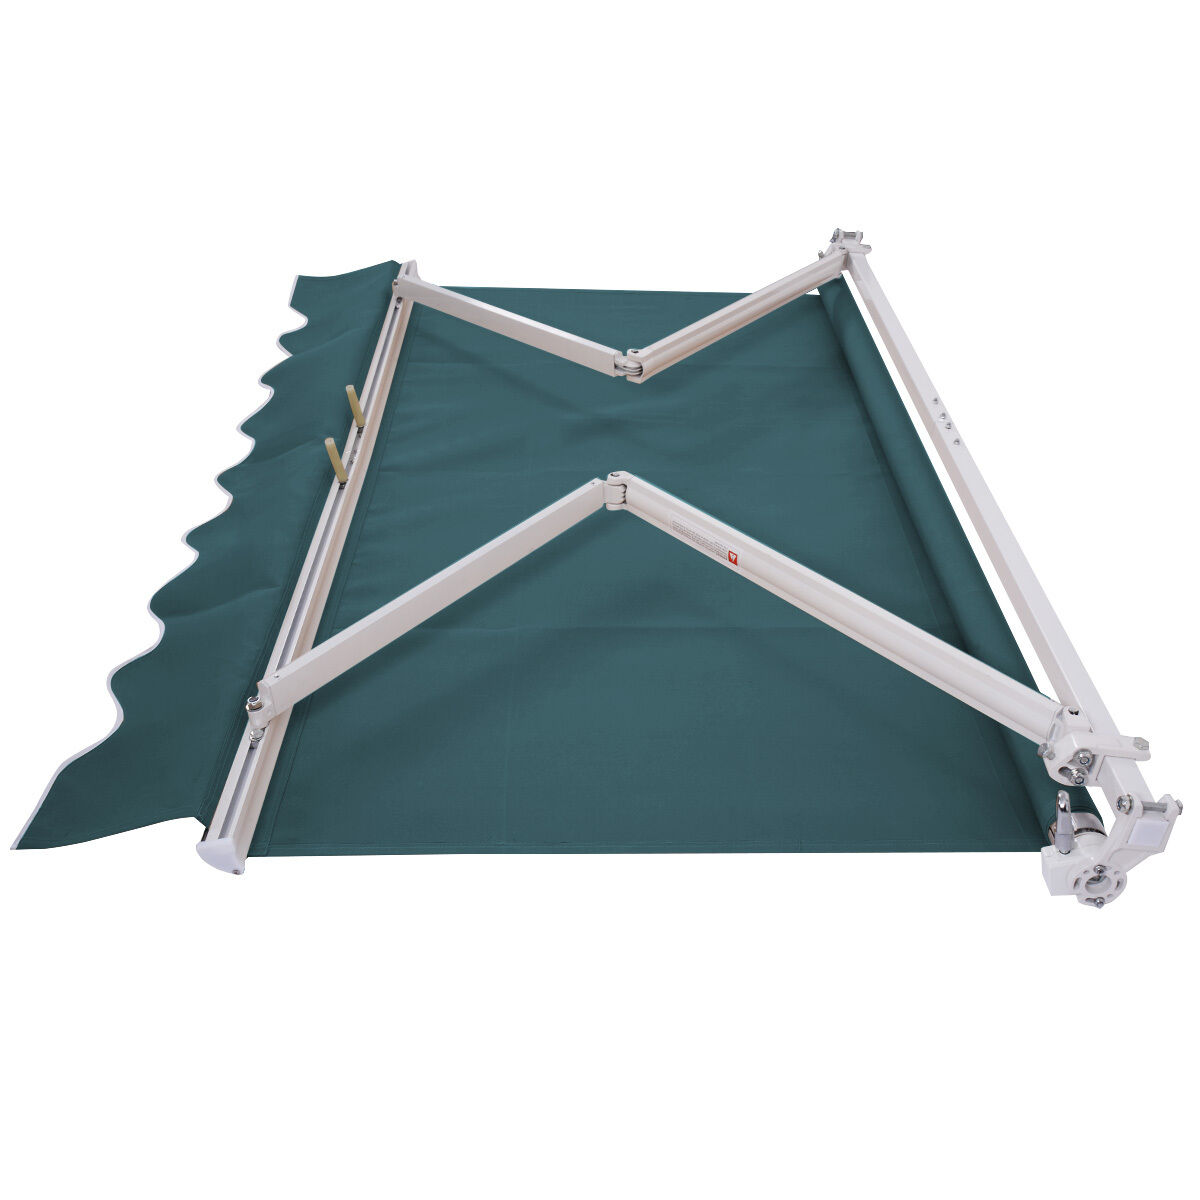 6.5'X5.0' Manual Patio Canopy Retractable Deck Awning ...